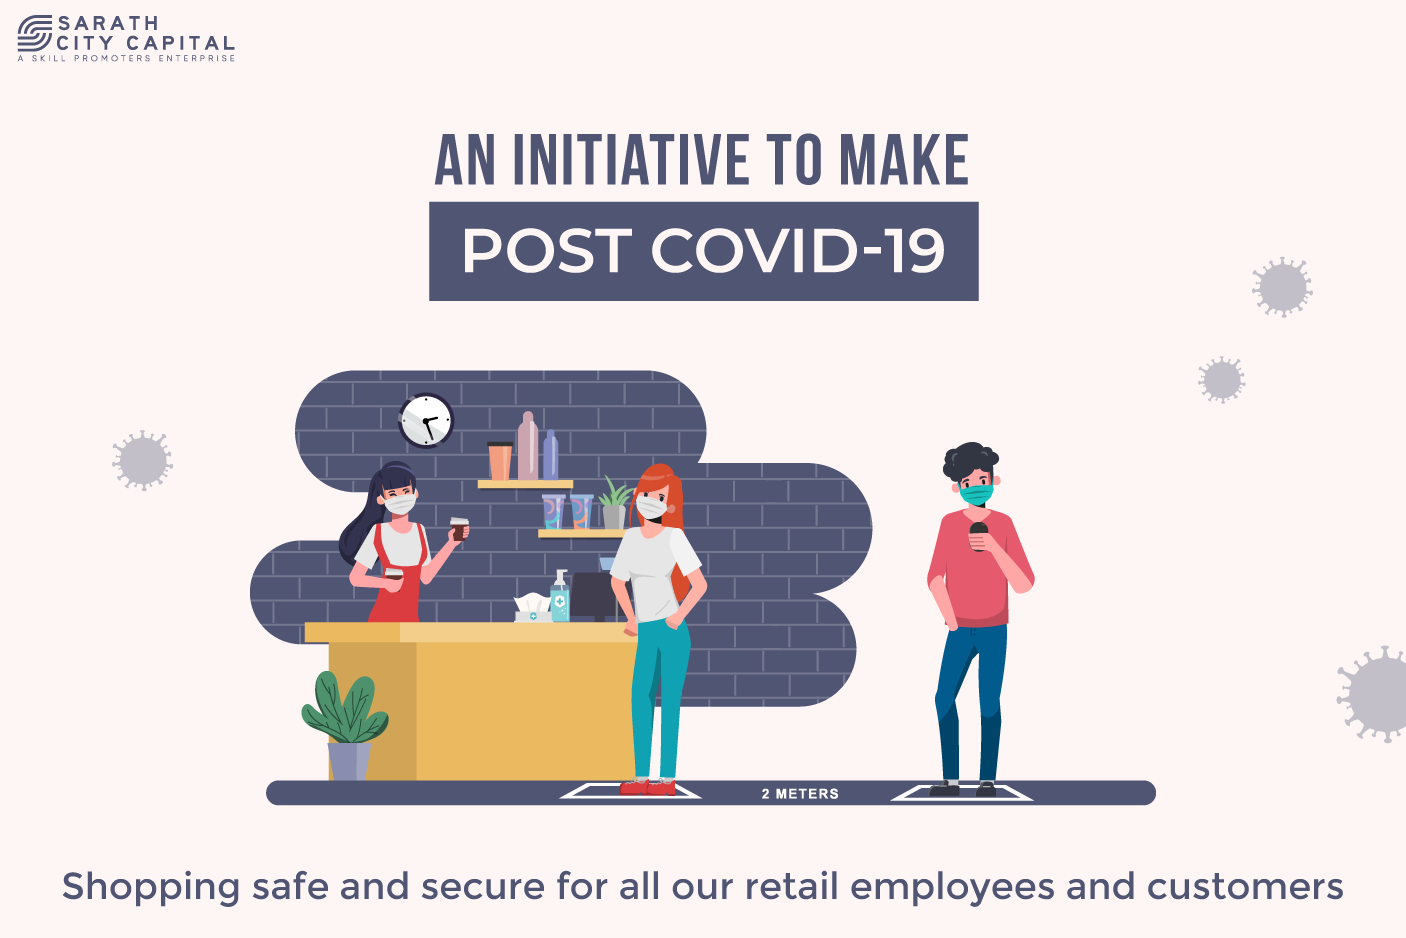 Sarath City Capital Mall Post COVD-19 Safety Initiatives